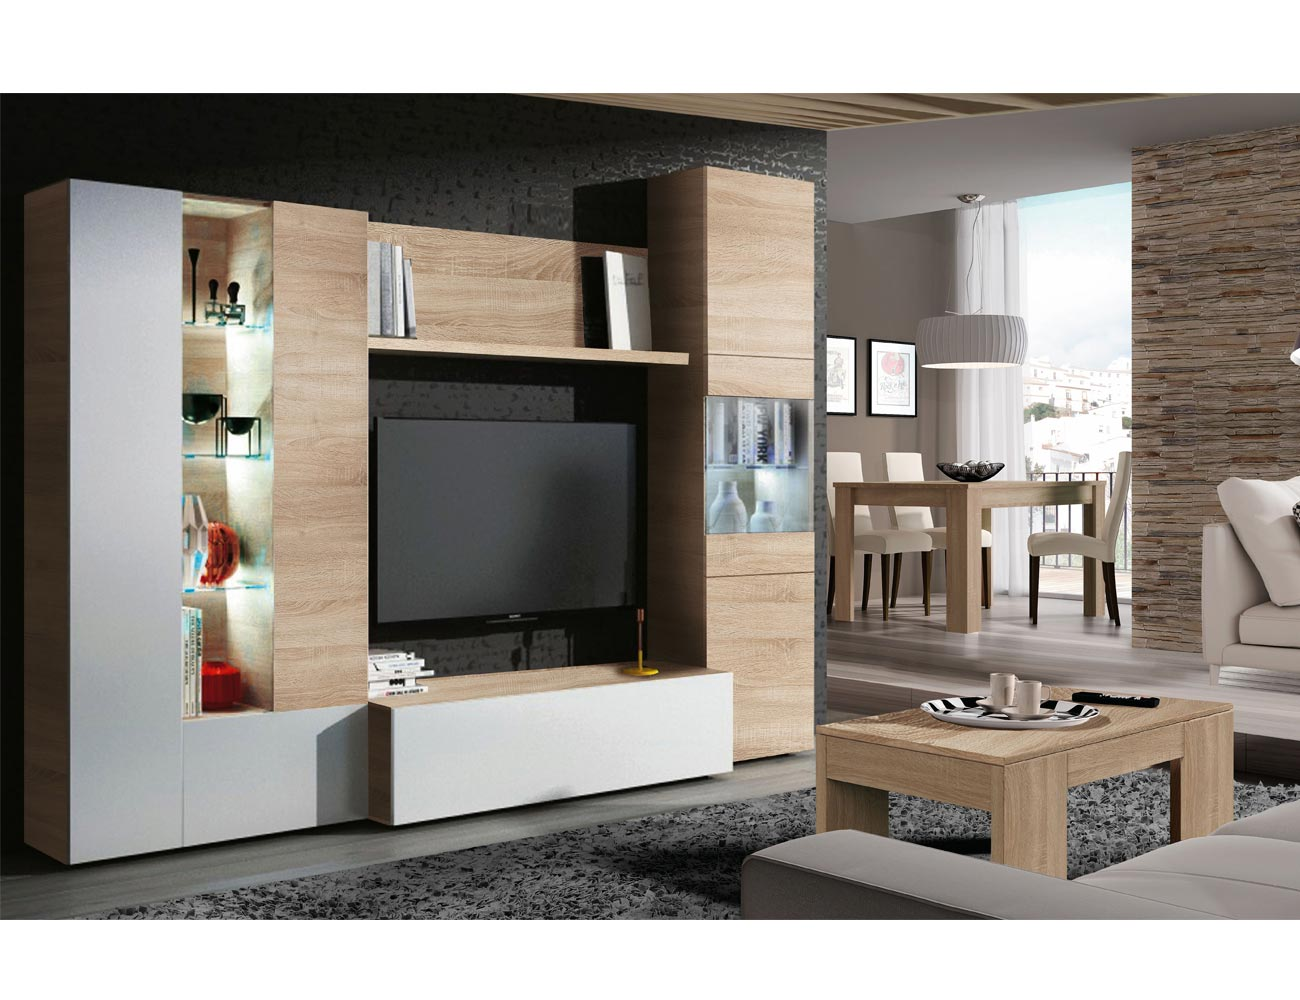 Mueble de sal n comedor modular en blanco con roble y luces leds factory del mueble utrera - Luces led para salon ...